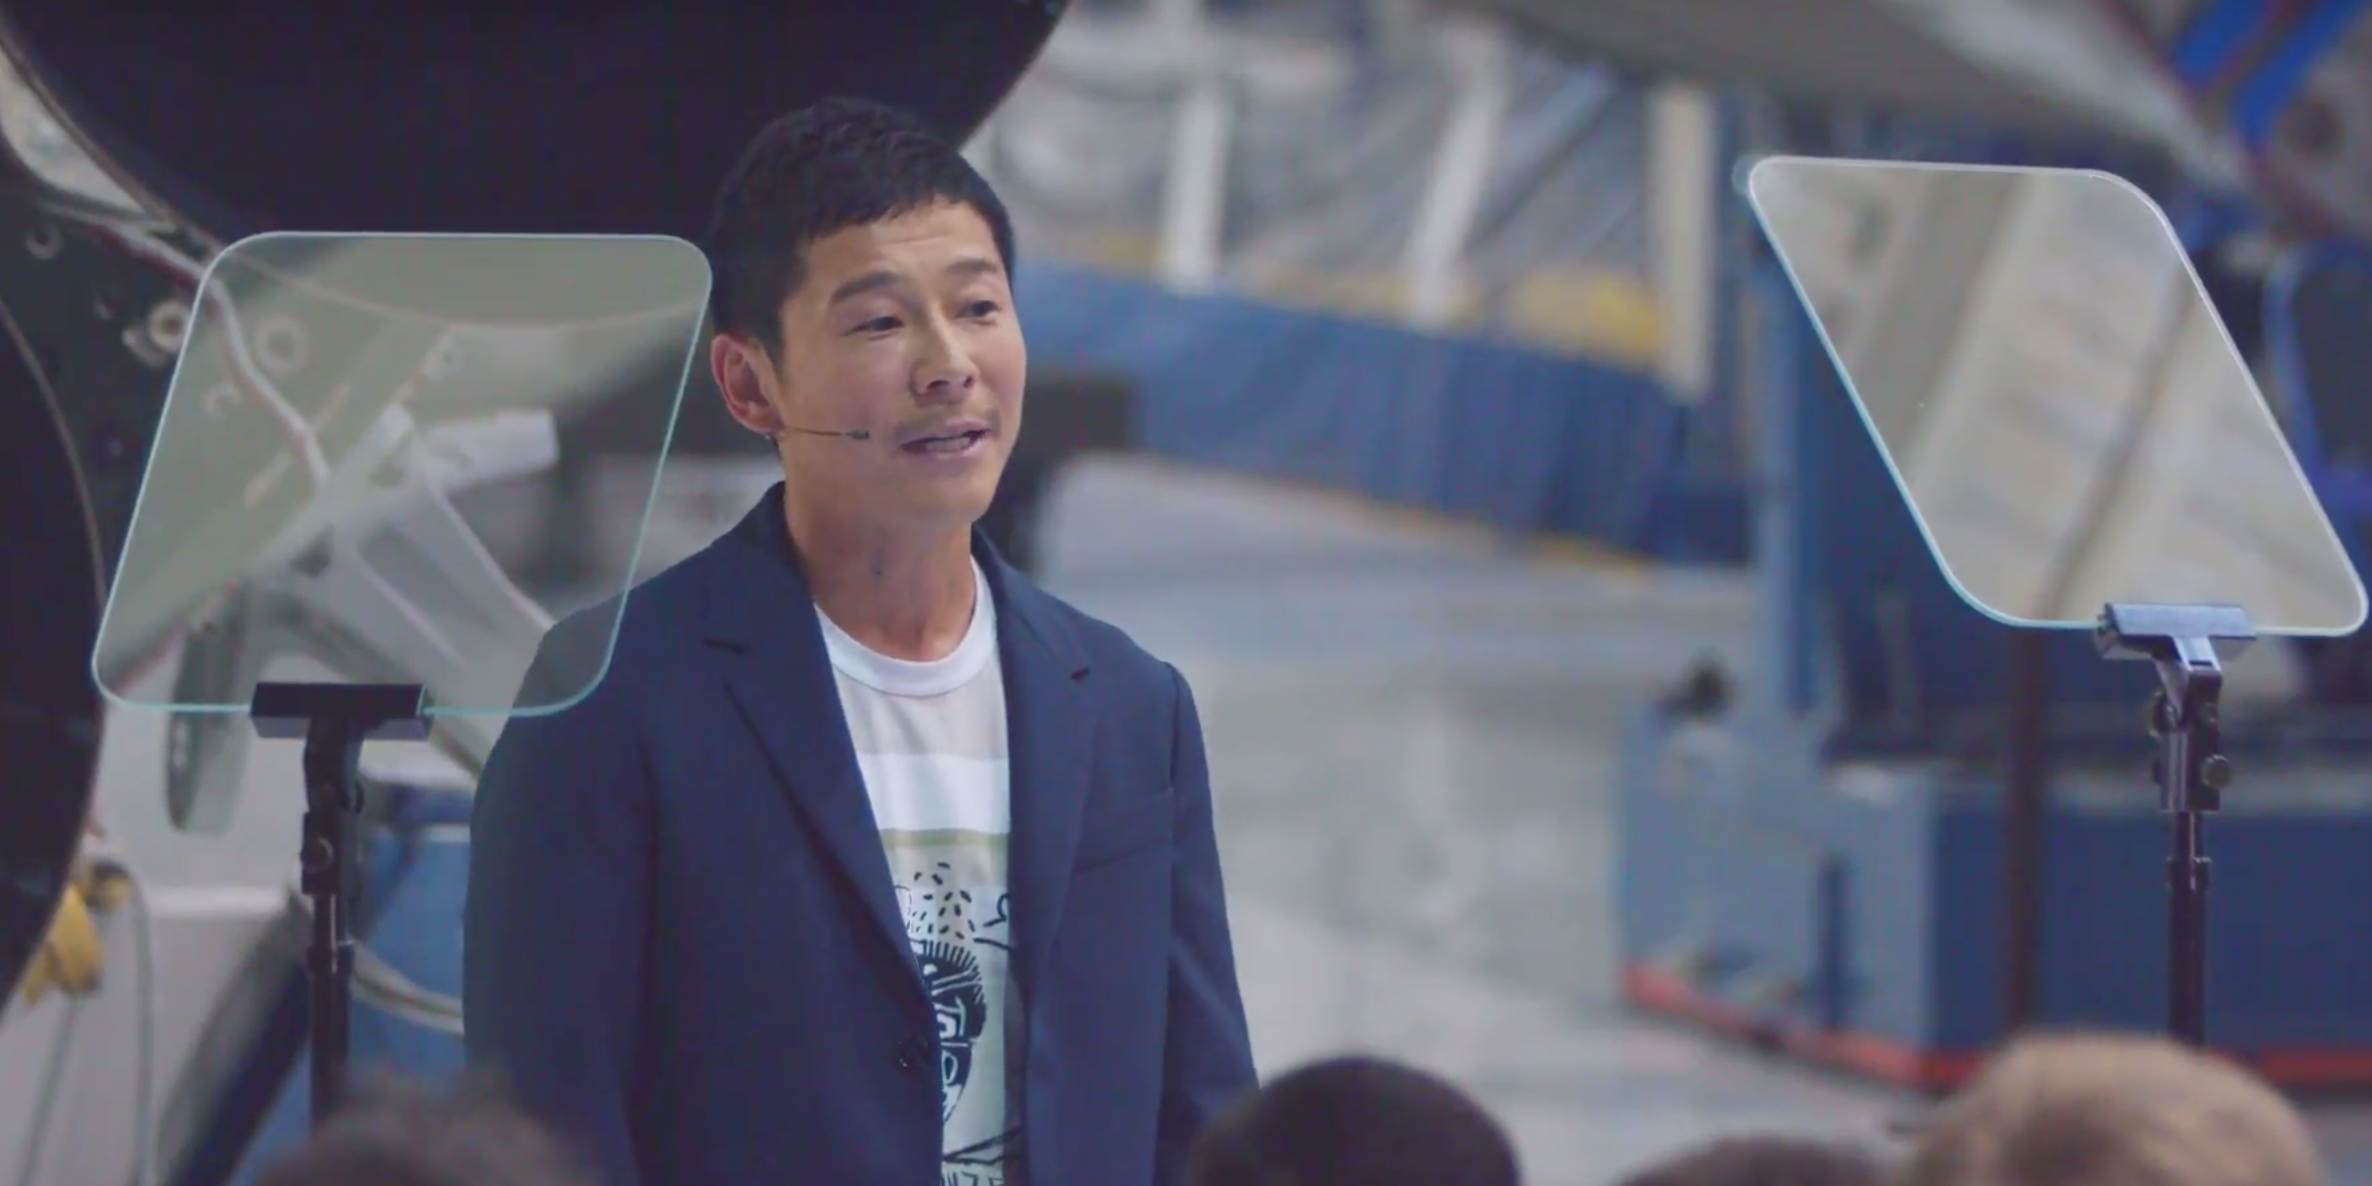 Yusaku Maezawa Is Revealed as SpaceX's First Lunar Passenger